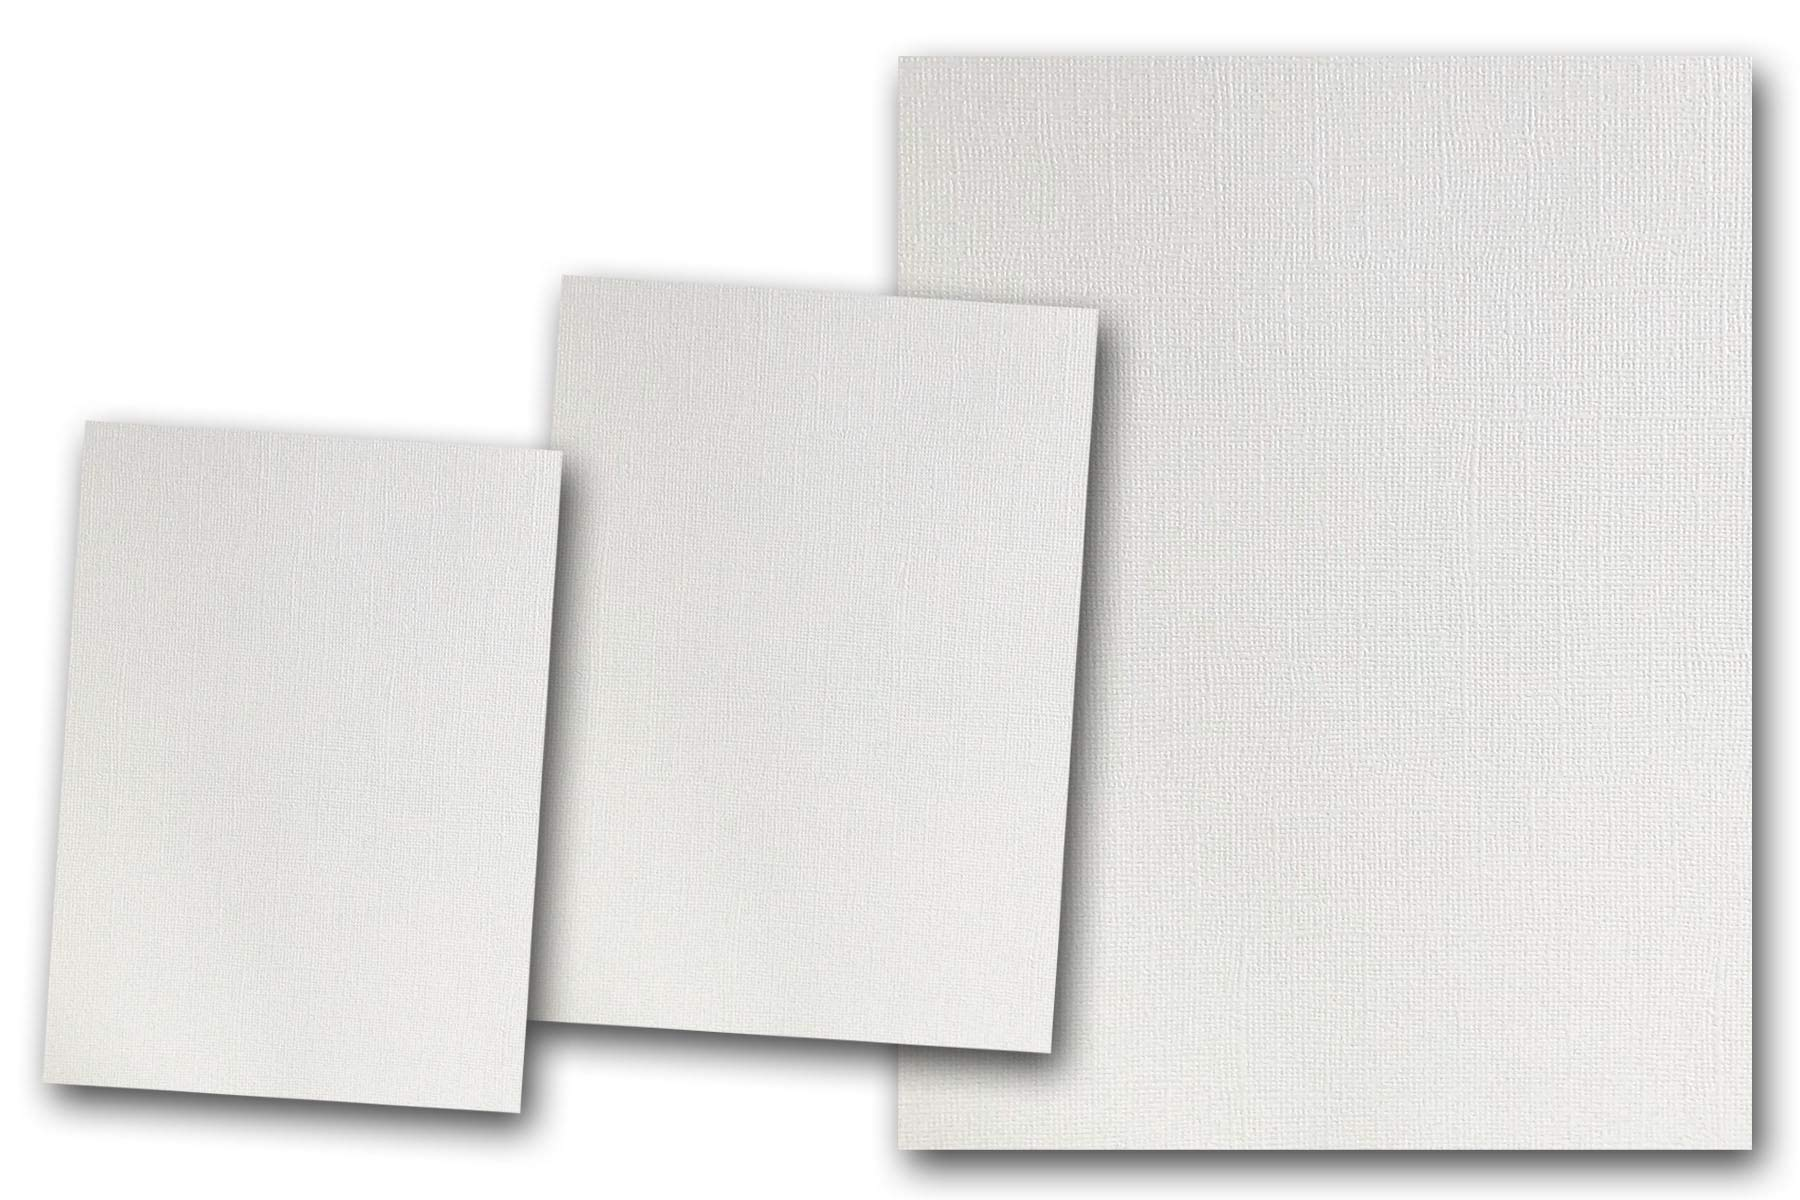 Premium Pearlized Metallic Textured Wedding Cake White Card Stock 80 Sheets - Matches Martha Stewart Wedding Cake - Great for Scrapbooking, Crafts, Flat Cards, DIY Projects, Etc. (5 x 7)